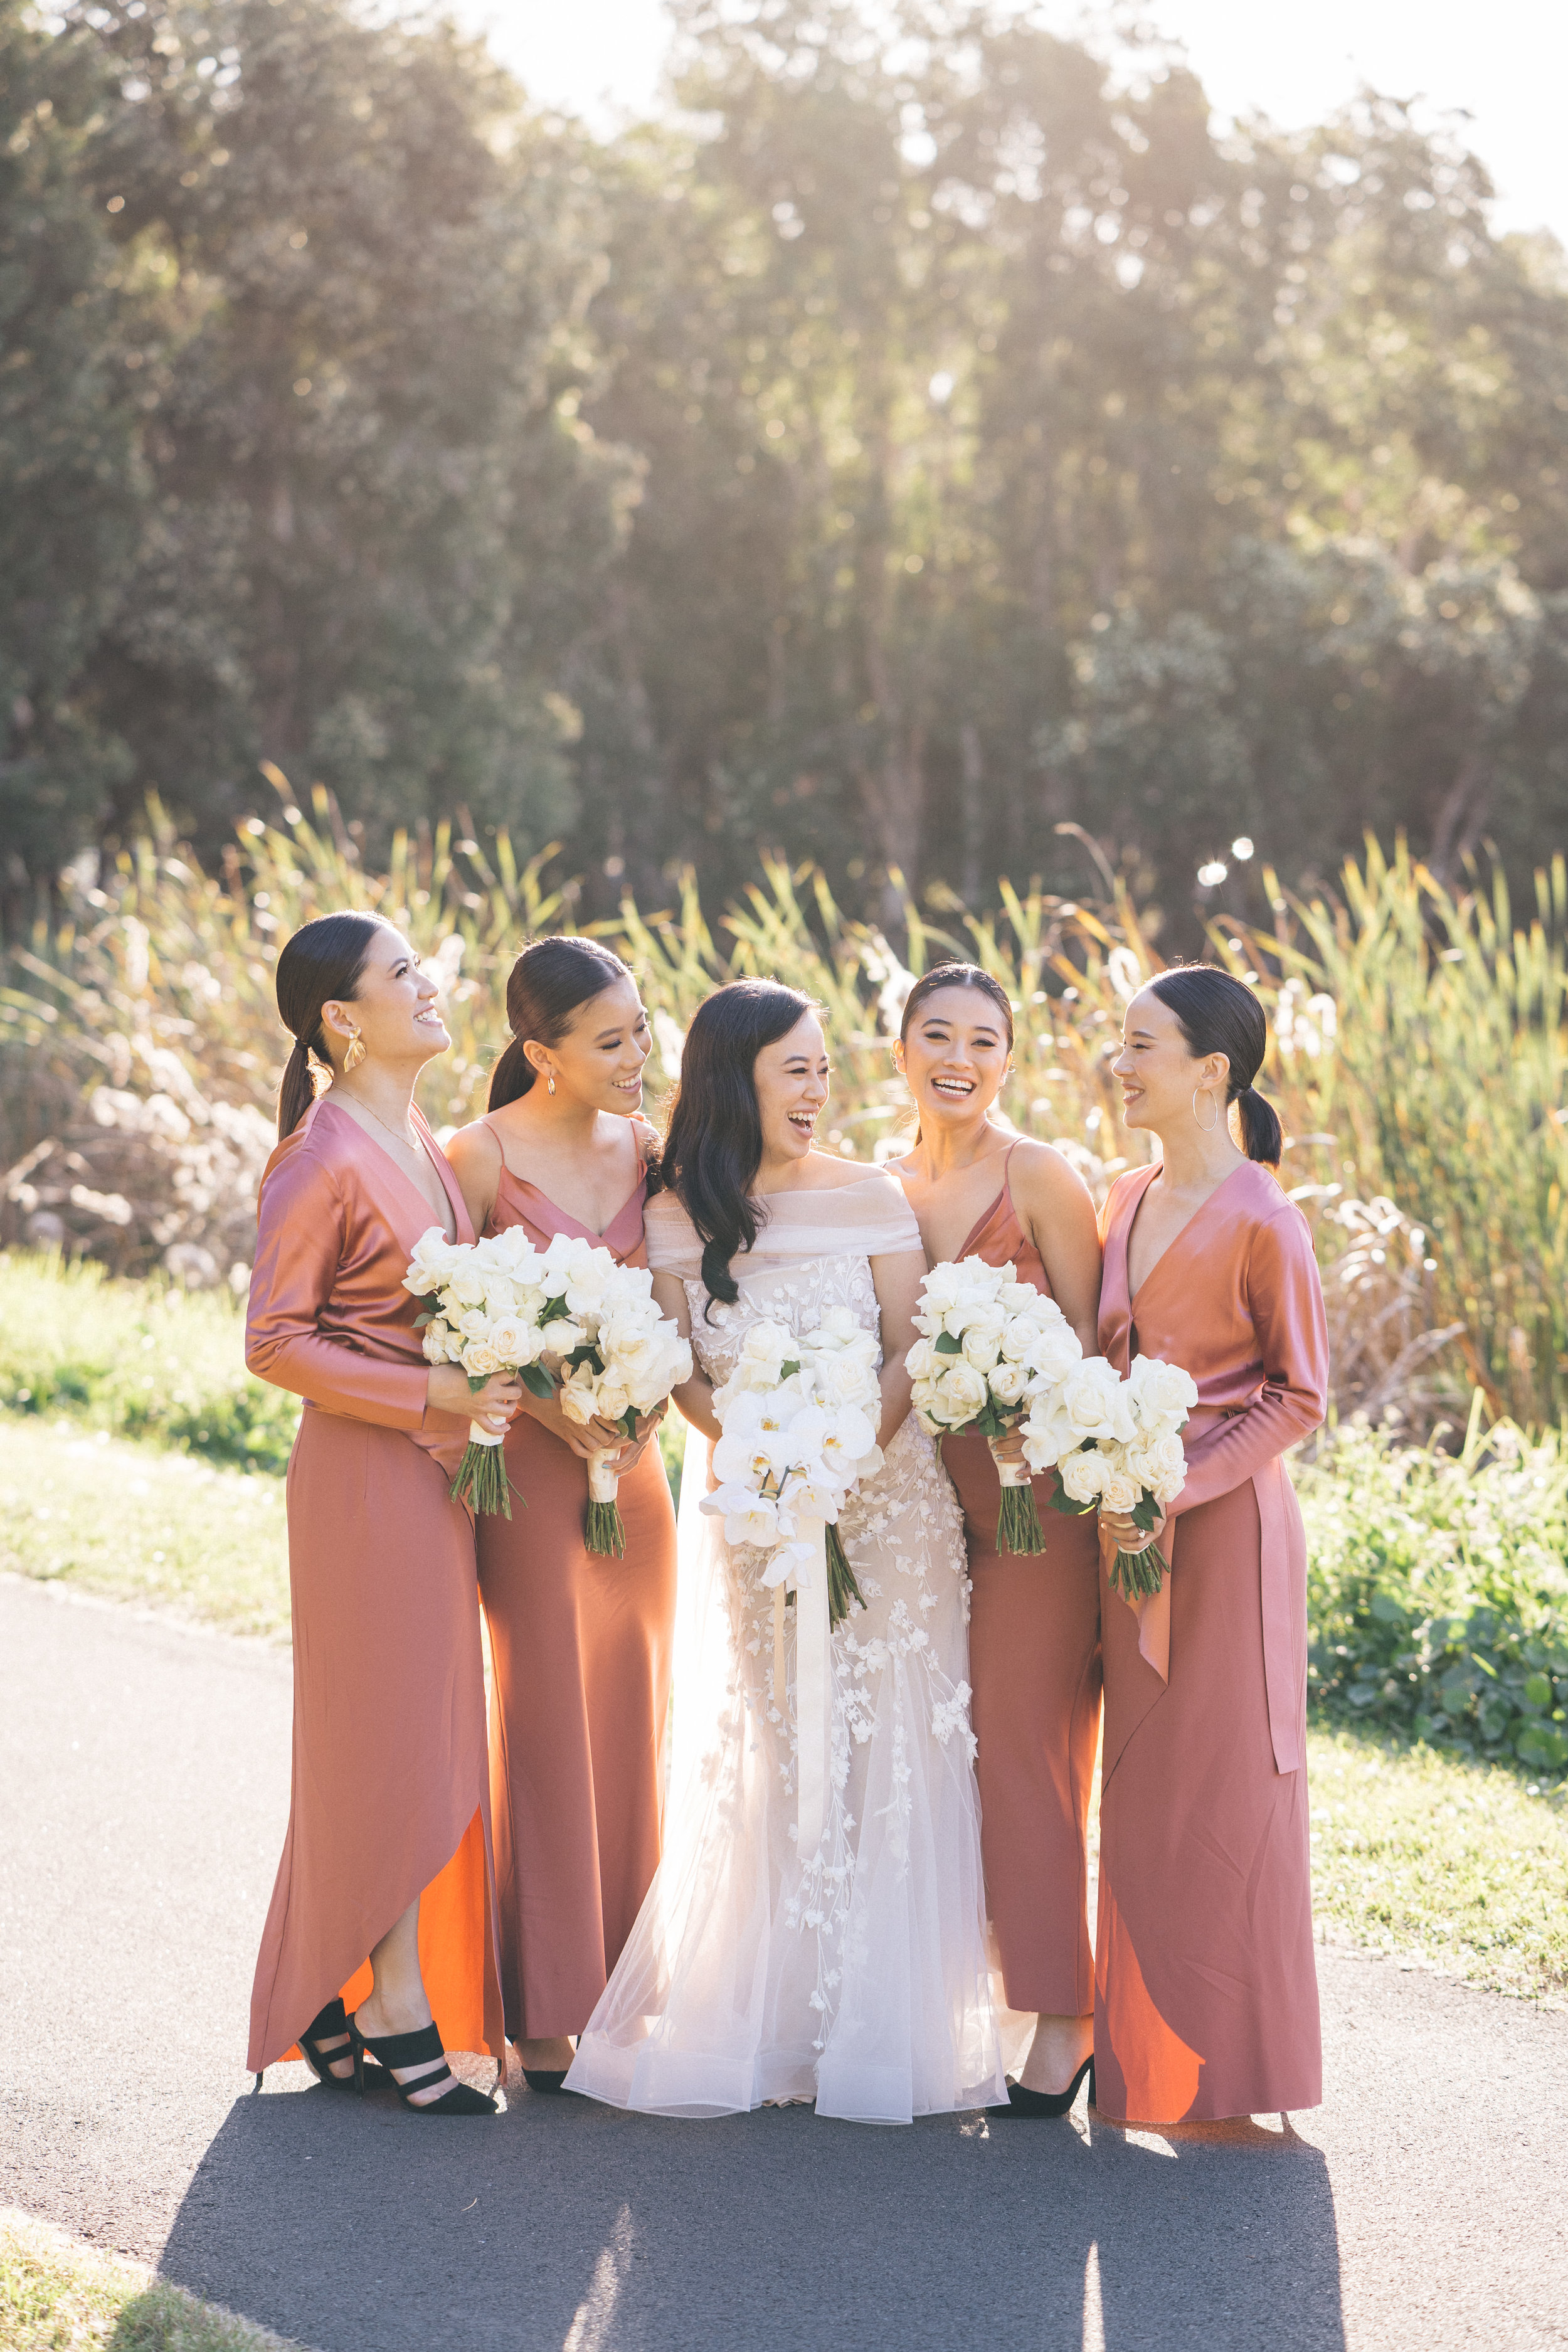 Ann Marie Yuen Photography - PREVIEW ONLY - 0006.jpg